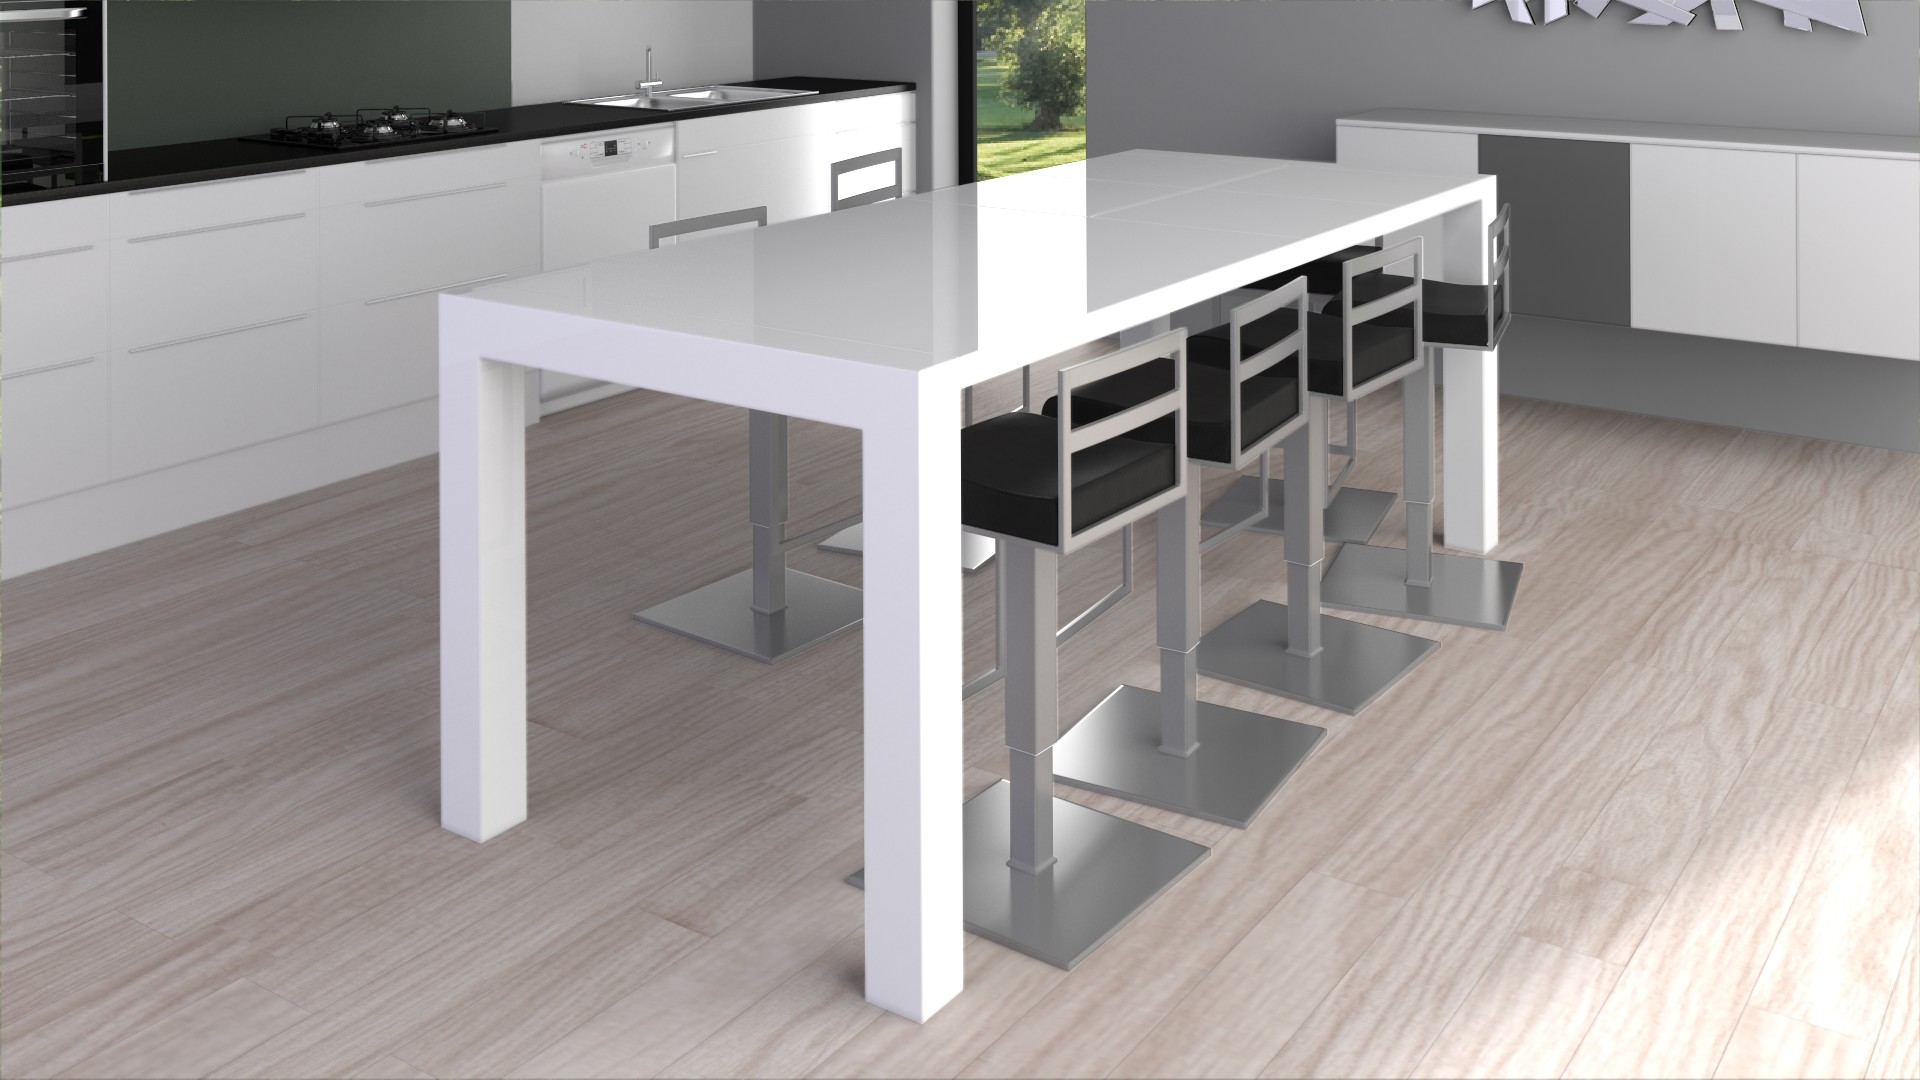 Table laque design avec 2 rallonges flexy blanc - Table haute cuisine design ...